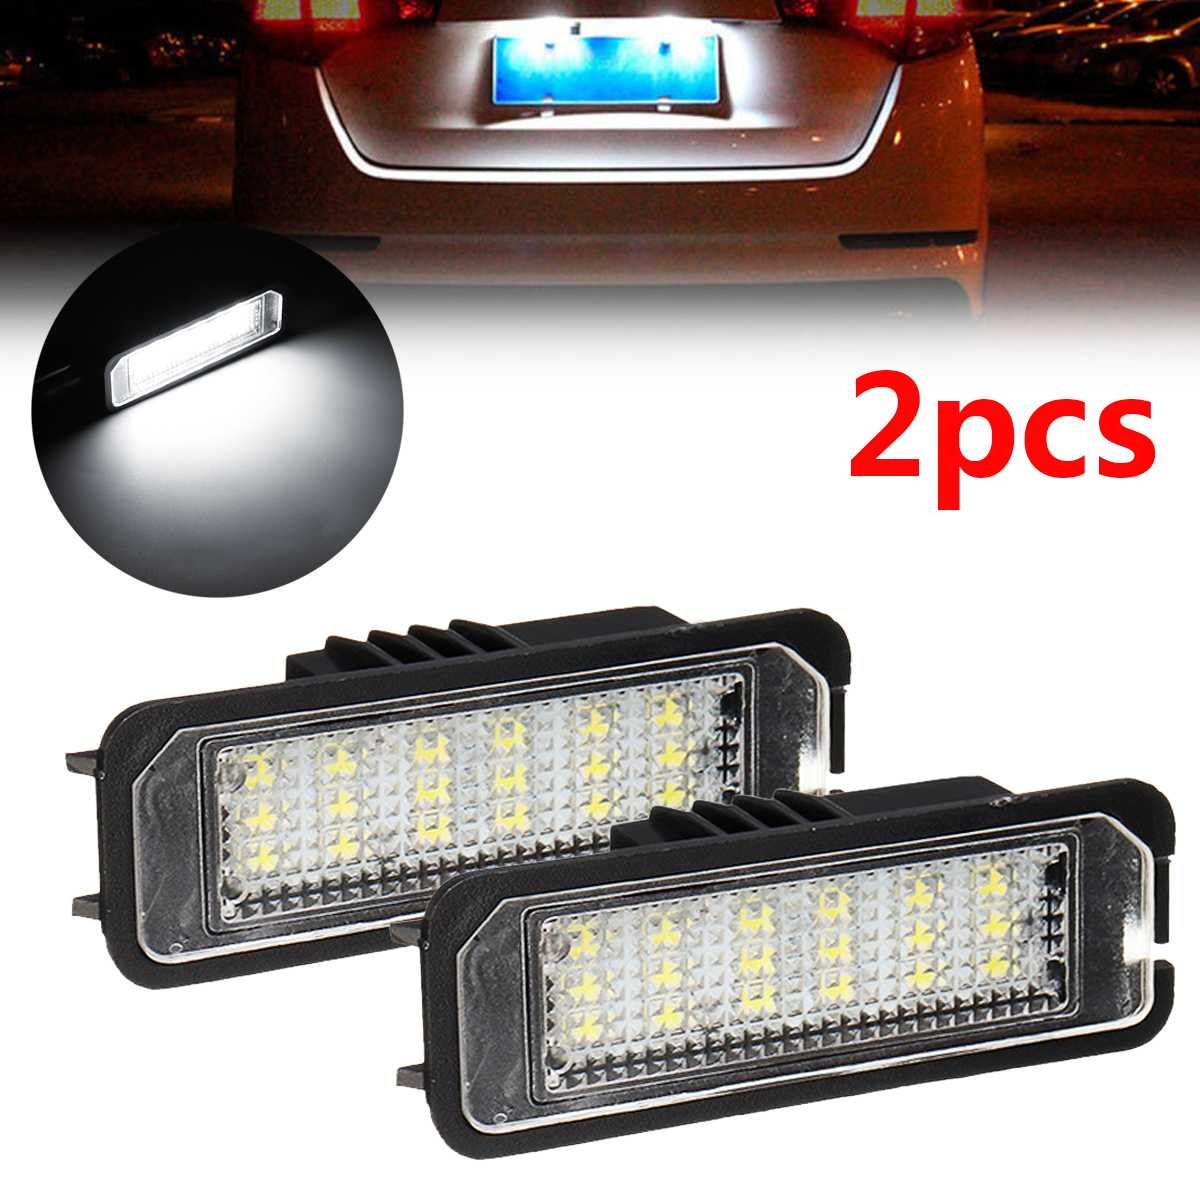 2Pcs 12V 5W LED Number License Plate Light Lamps For VW GOLF 4 6 Polo 9N For Passat Car License Plate Lights Exterior Access